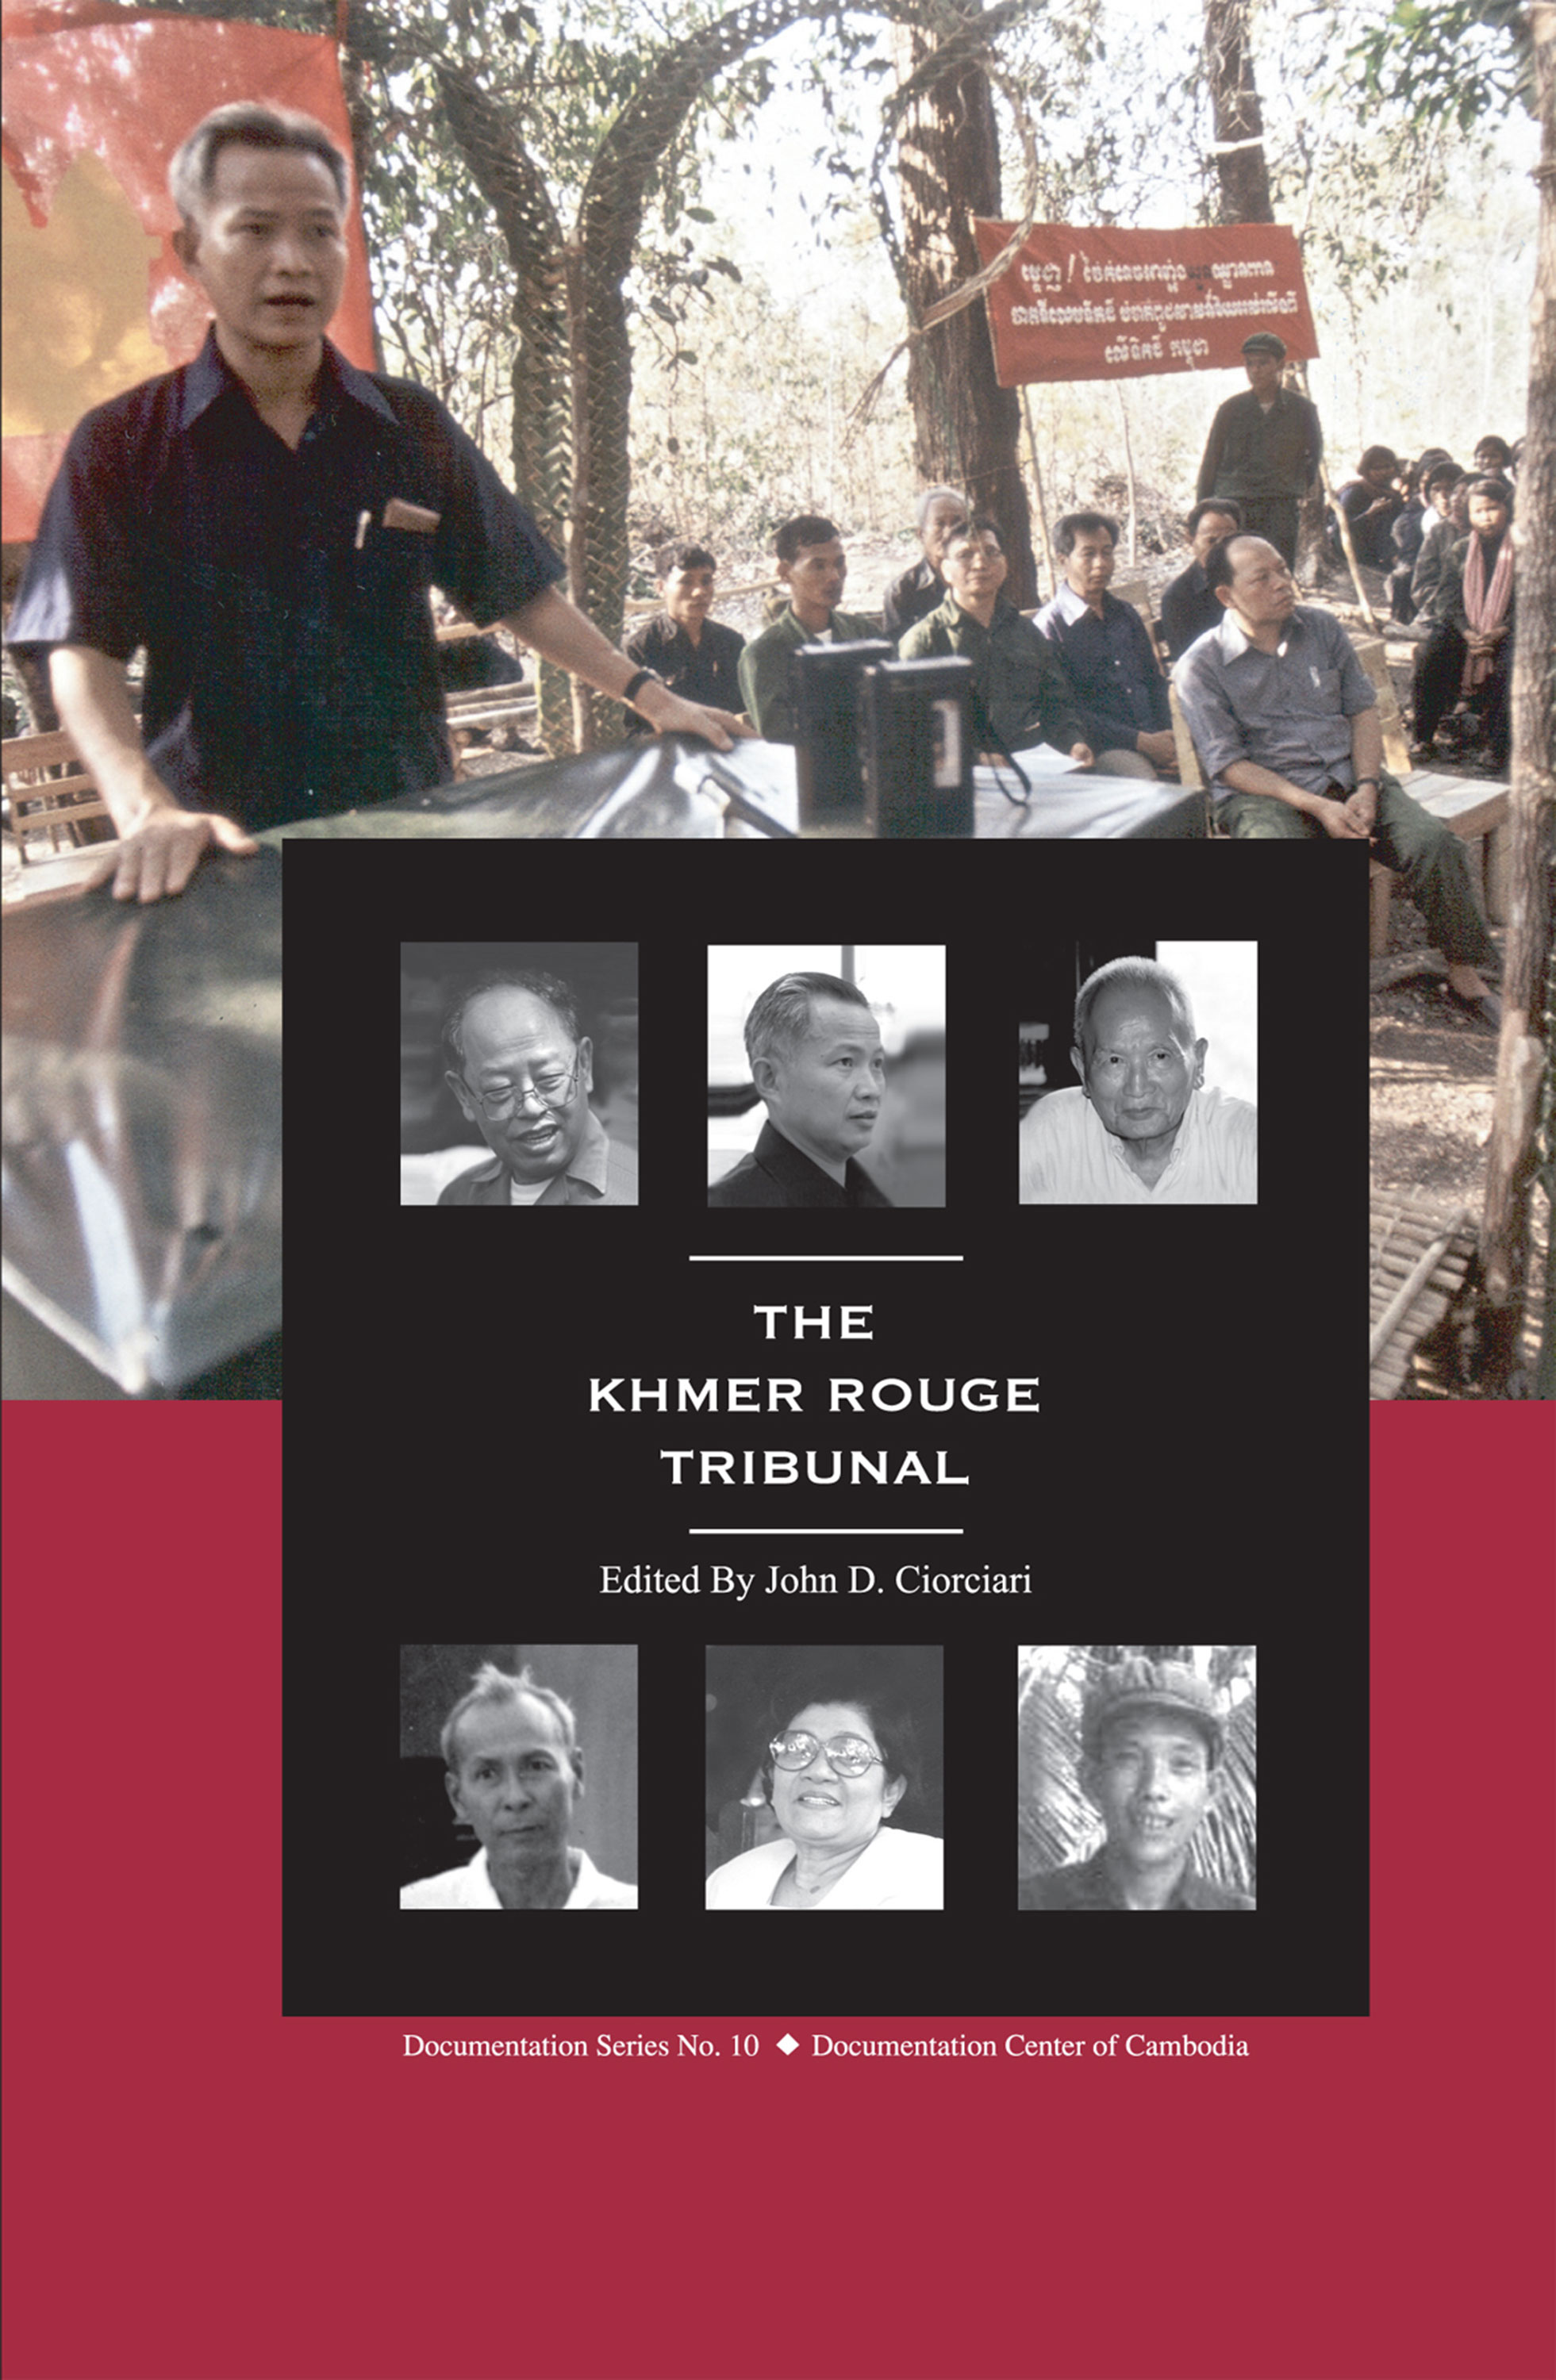 The Khmer Rouge Tribunal